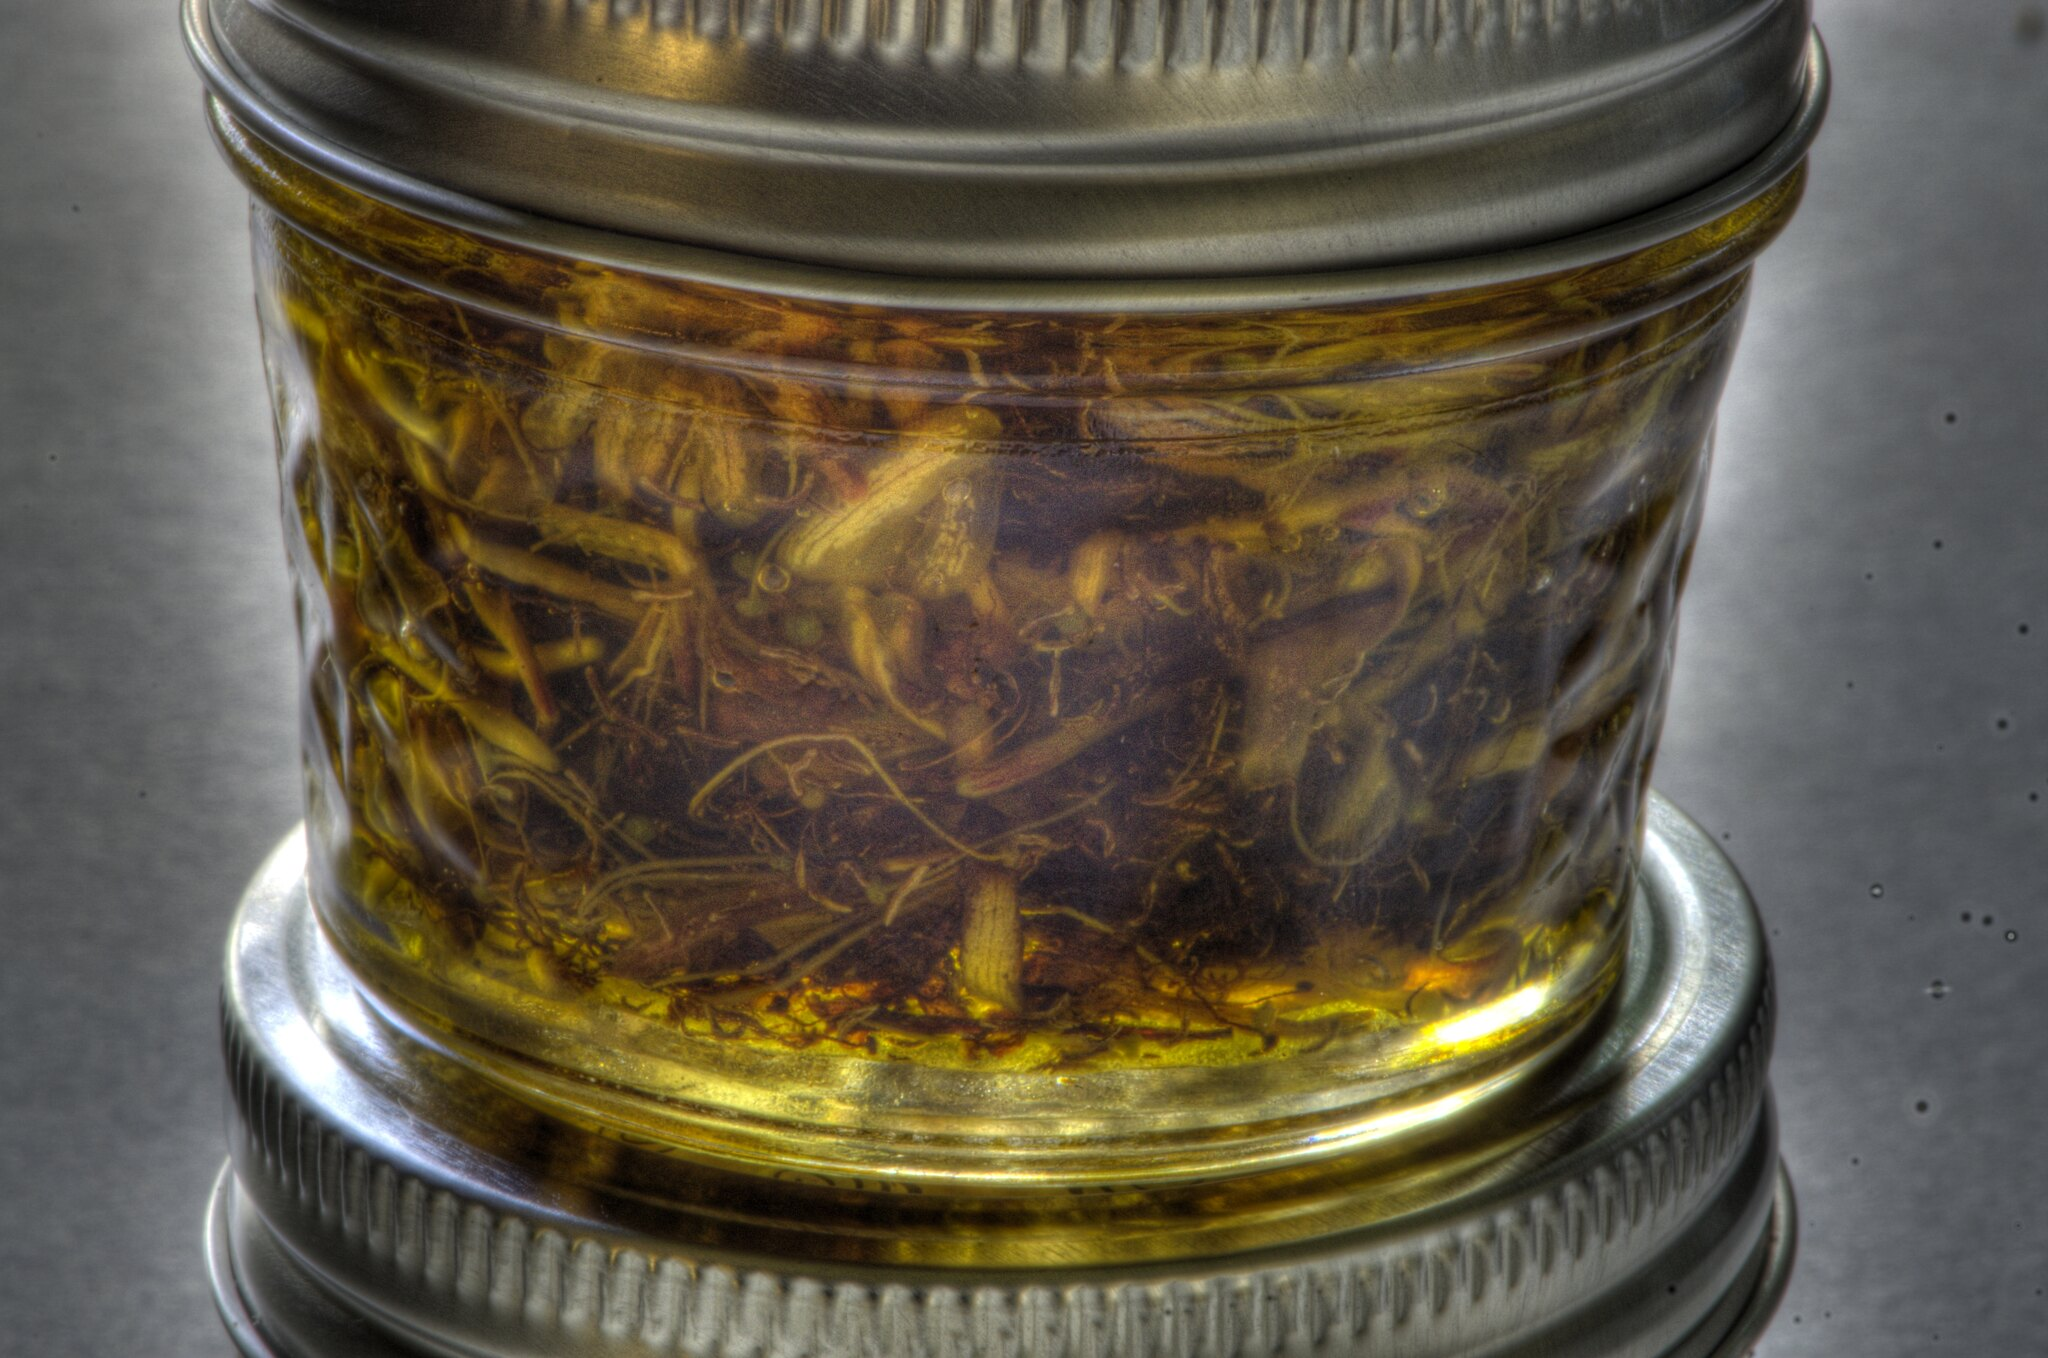 Infusion in a small jar